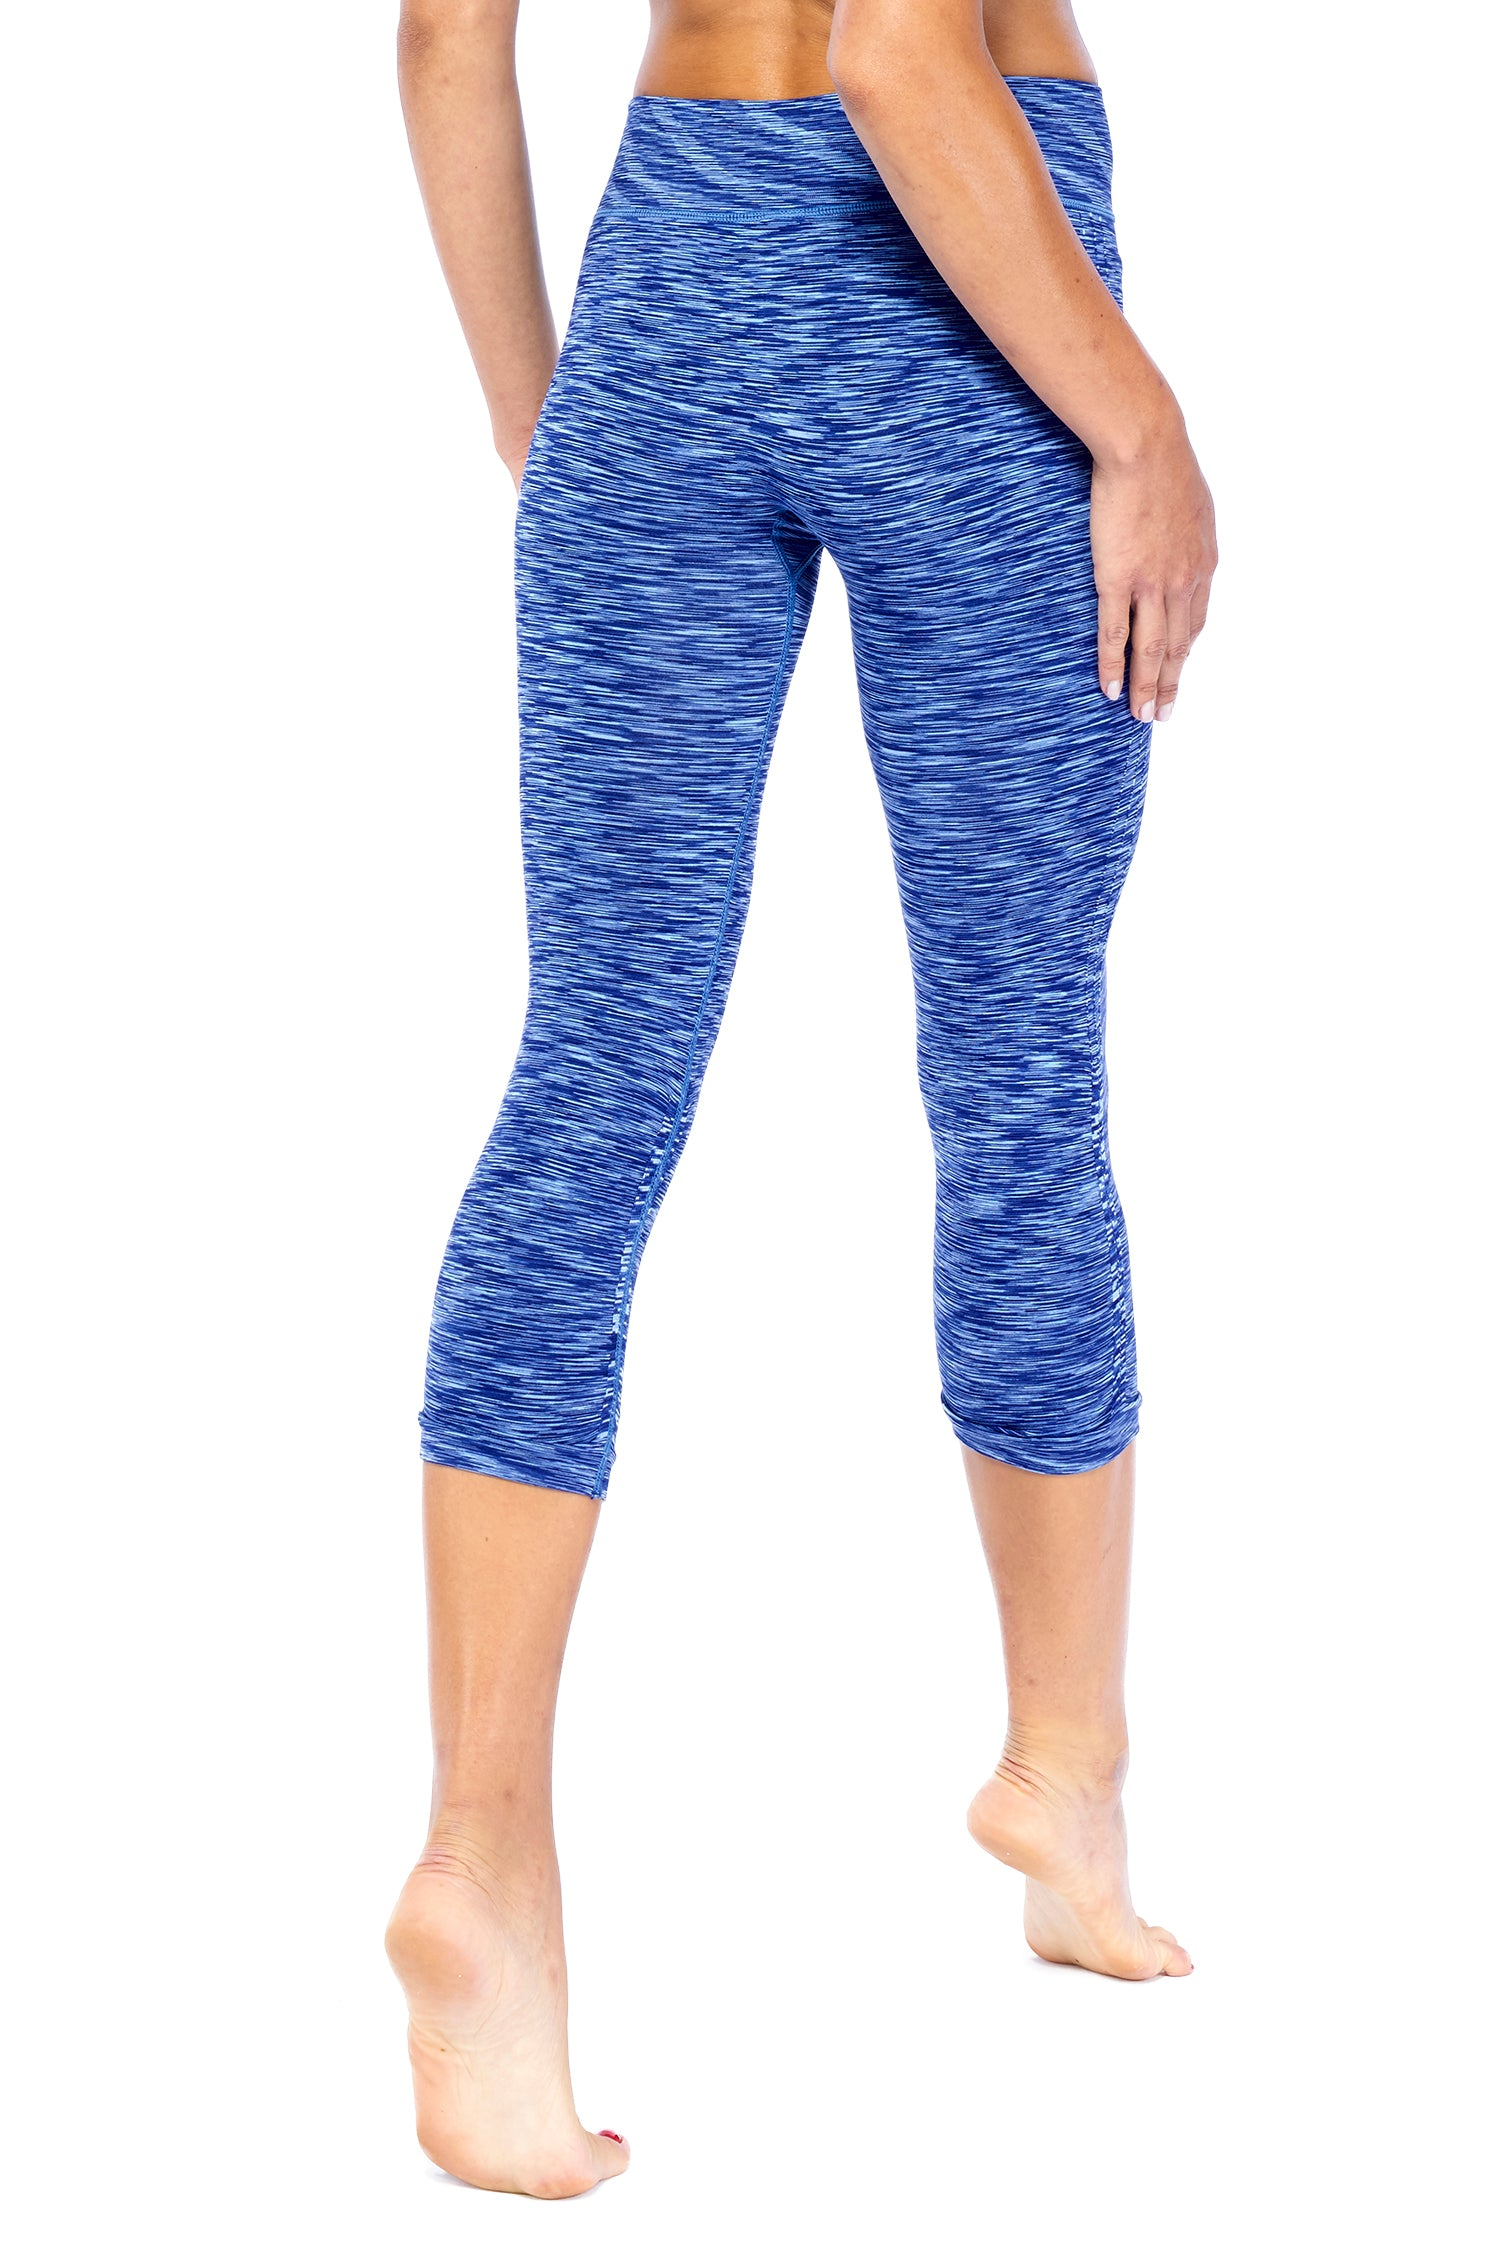 Stand Out Leggings - Blue Royal